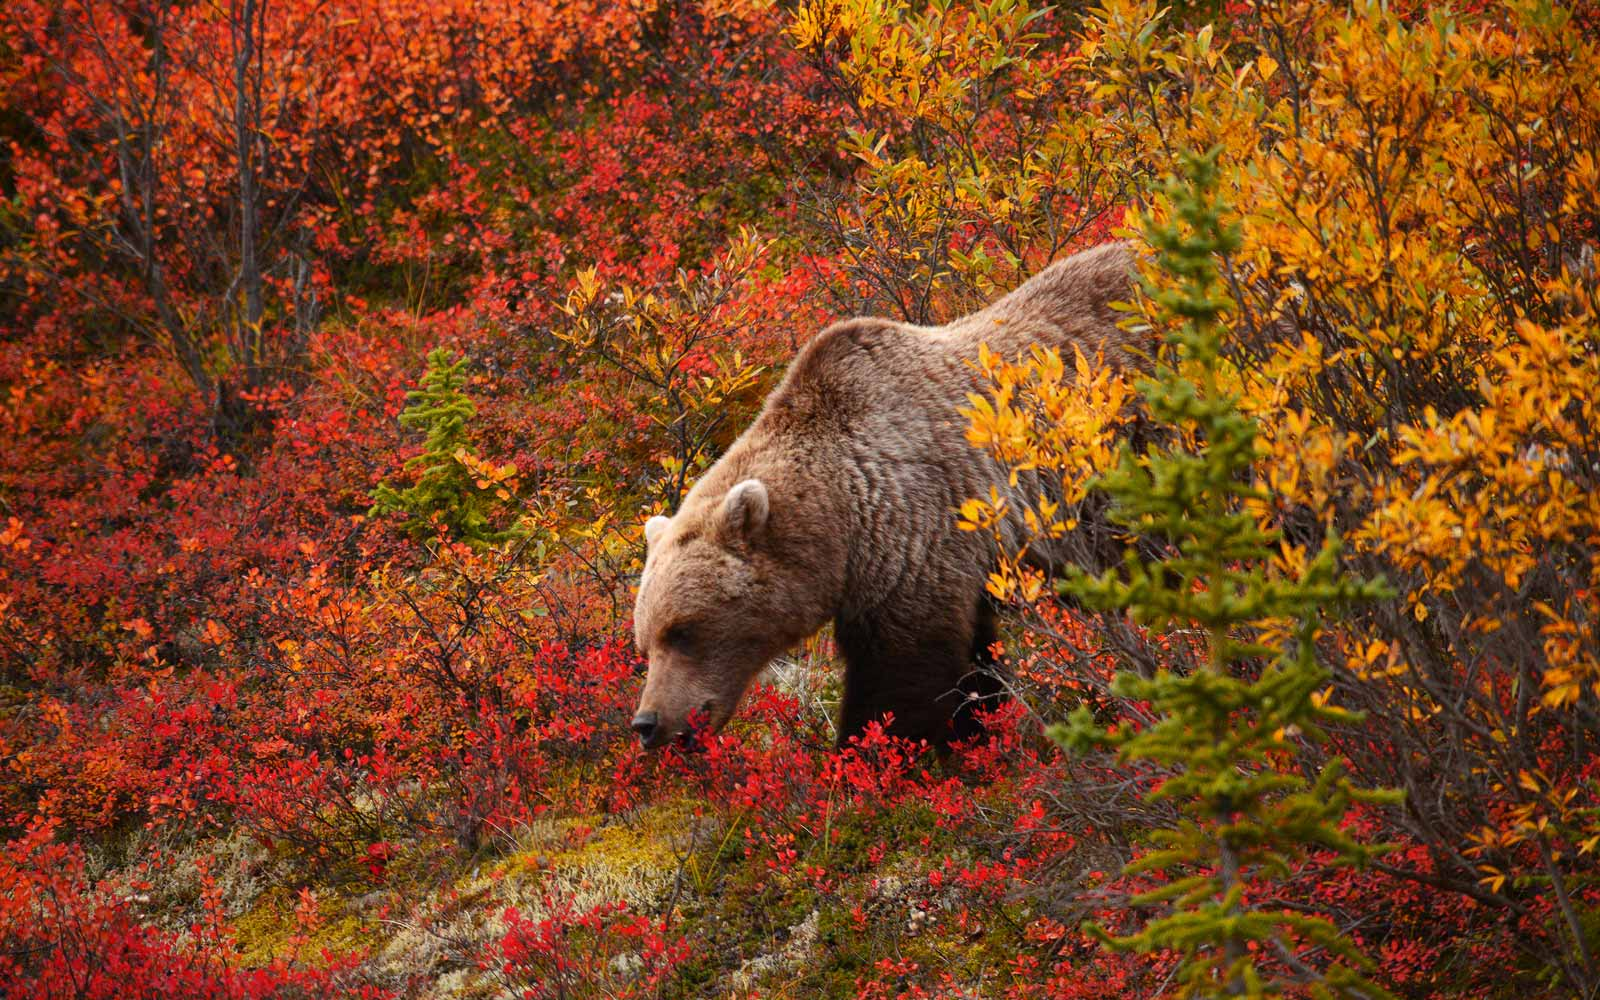 Grizzly bear at Denali National Park with Fall foliage colors